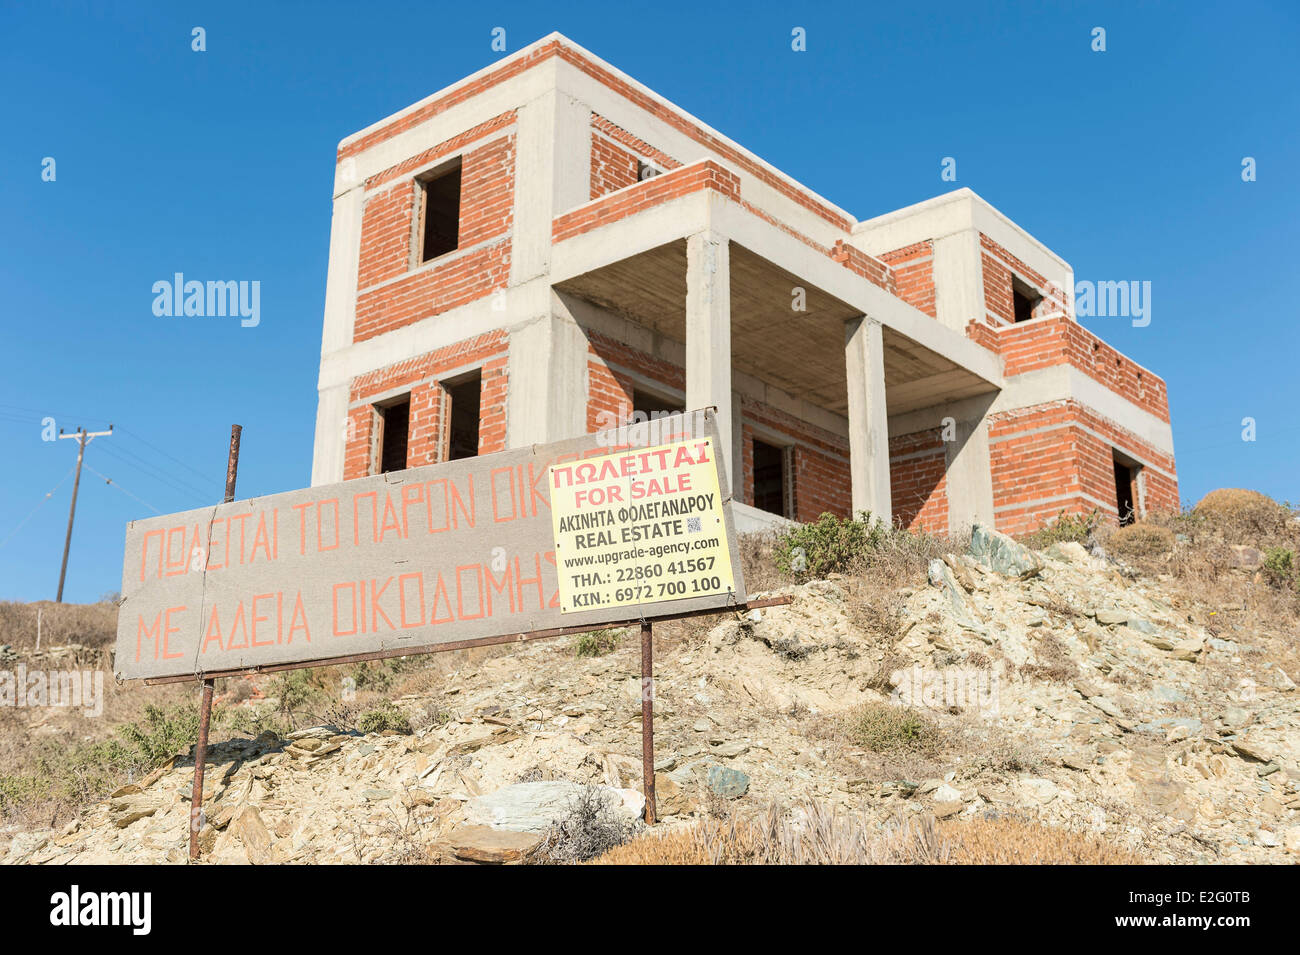 Greece Cyclades Islands Folegandros Island house for sale - Stock Image